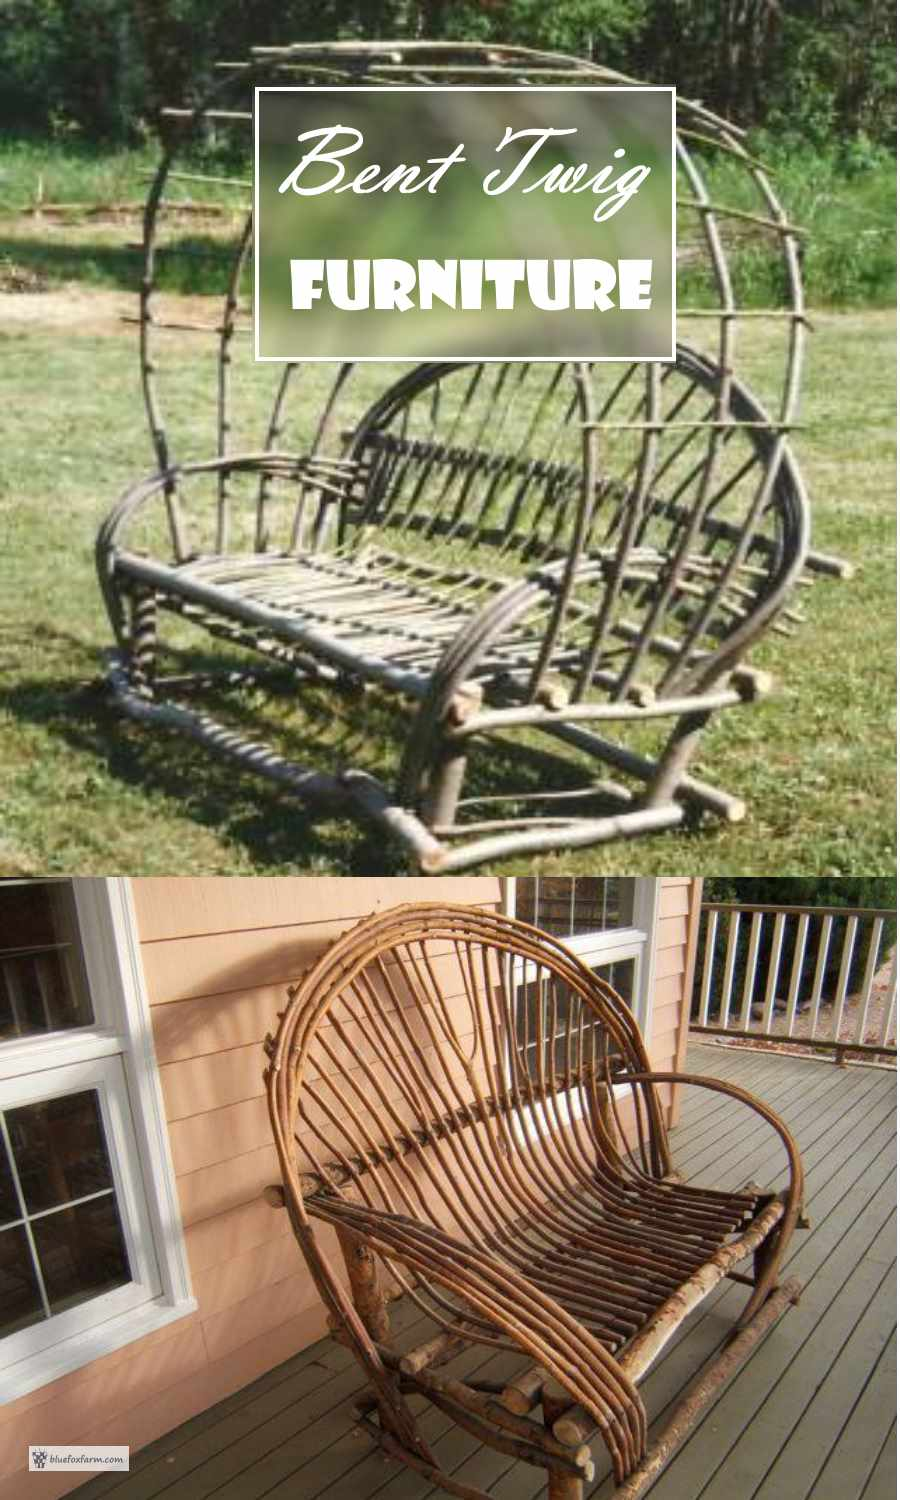 Incroyable Bent Twig Furniture   Classic And Rustic.